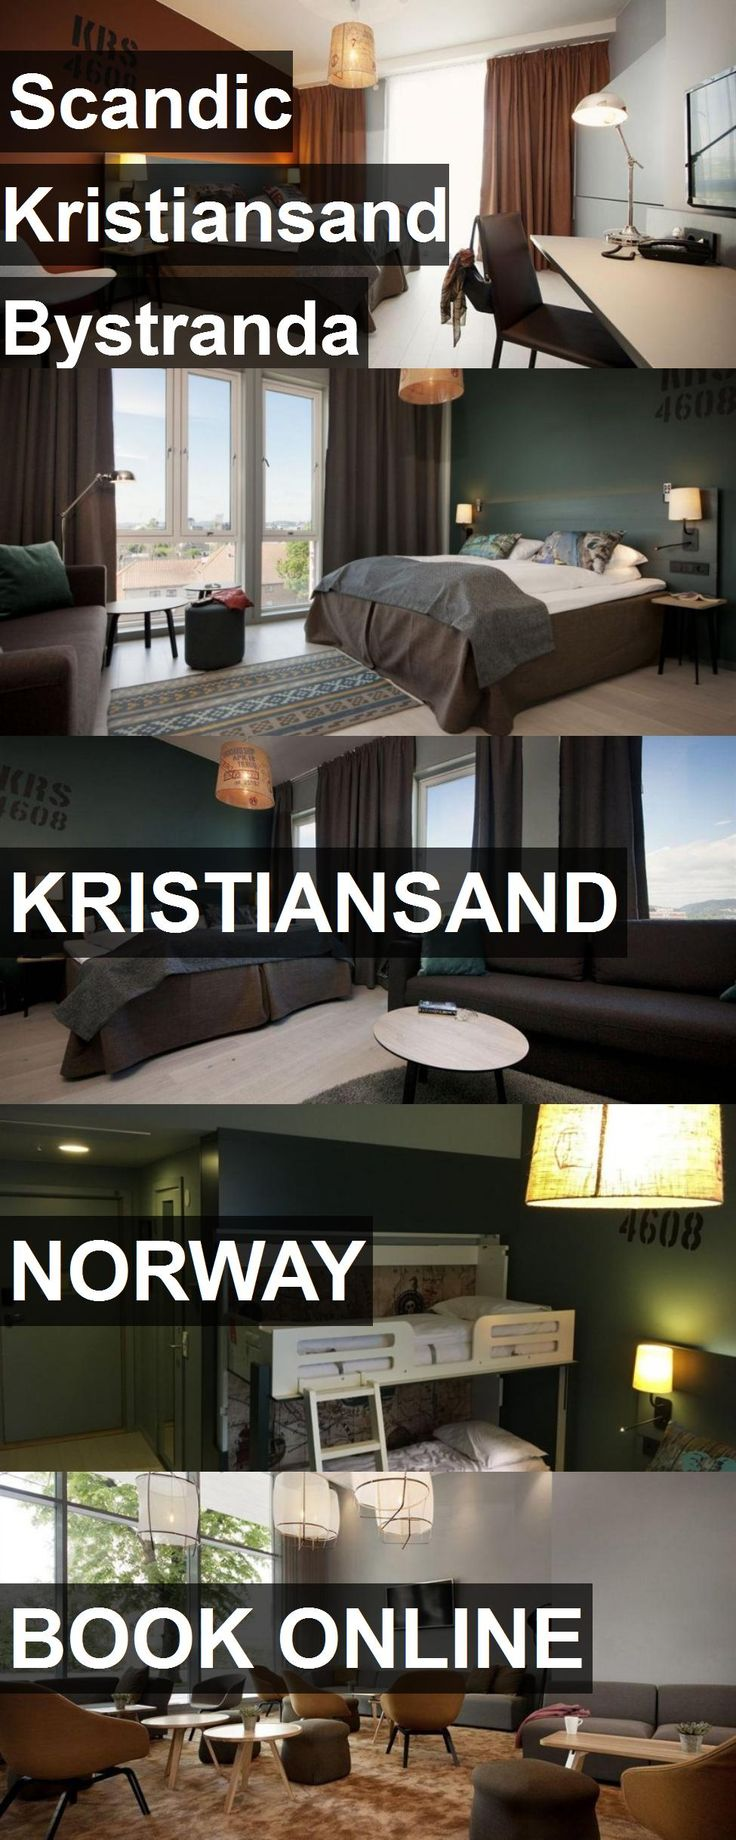 Hotel Scandic Kristiansand Bystranda in Kristiansand, Norway. For more information, photos, reviews and best prices please follow the link. #Norway #Kristiansand #hotel #travel #vacation